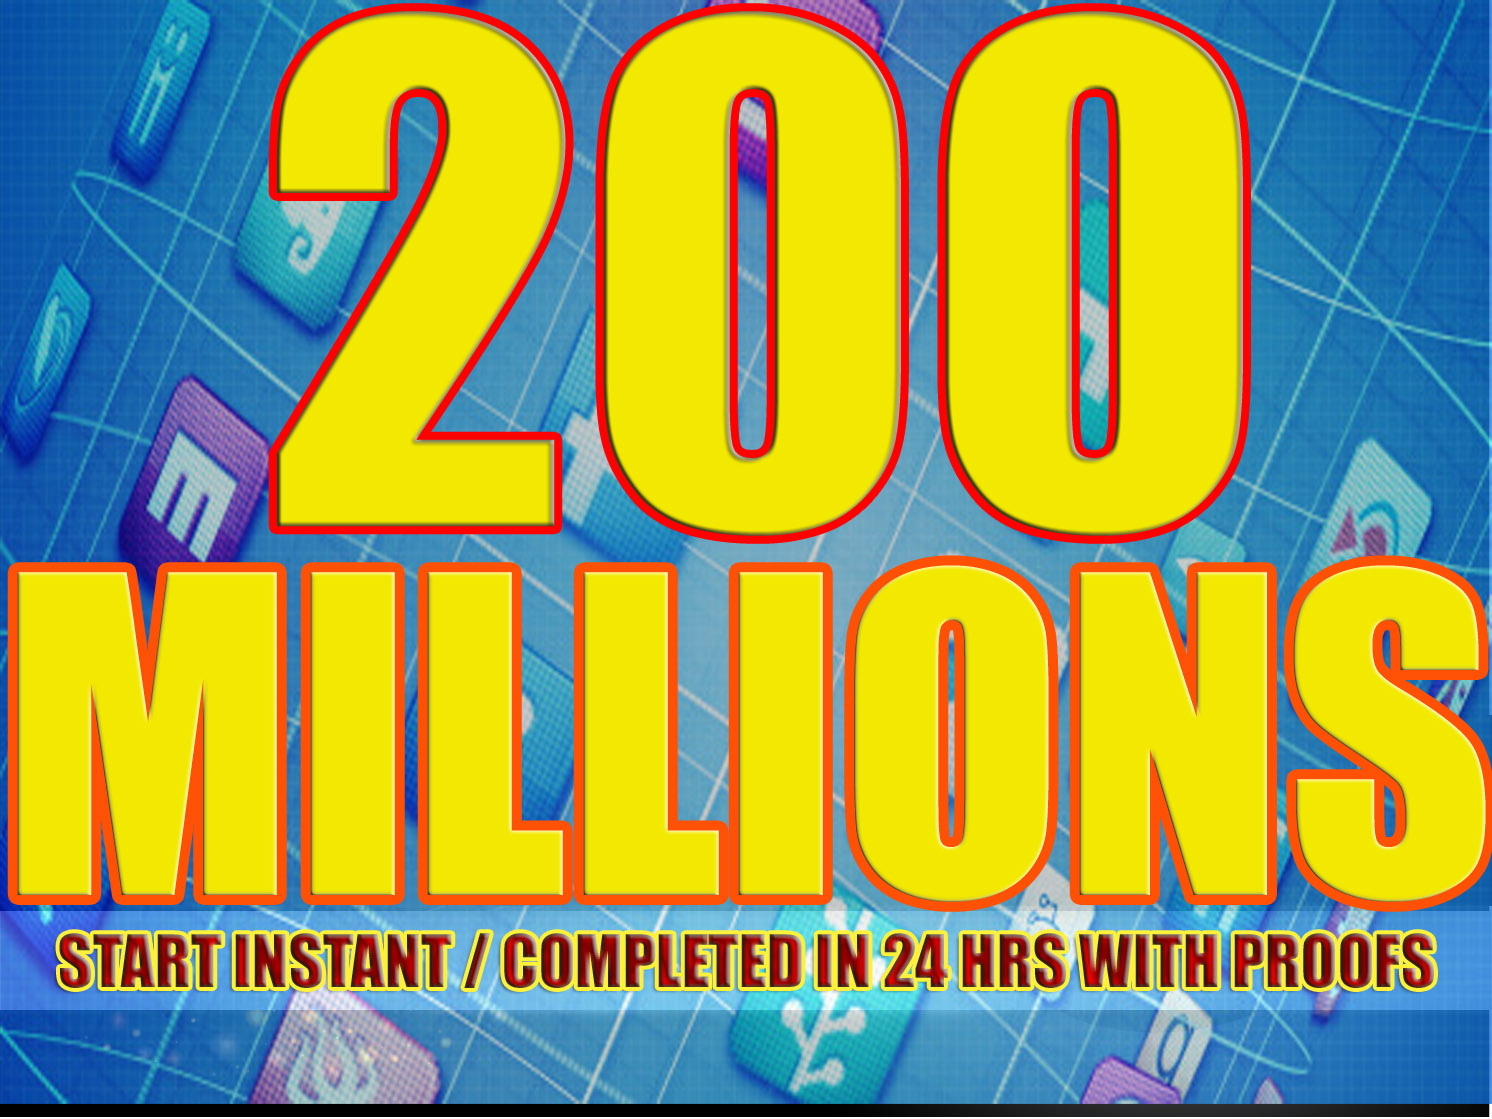 SHOUT OUT ANYTHING WITH 200,998,608 (200 MILLIONS) ACTIVE FACEBOOK MEMBERS